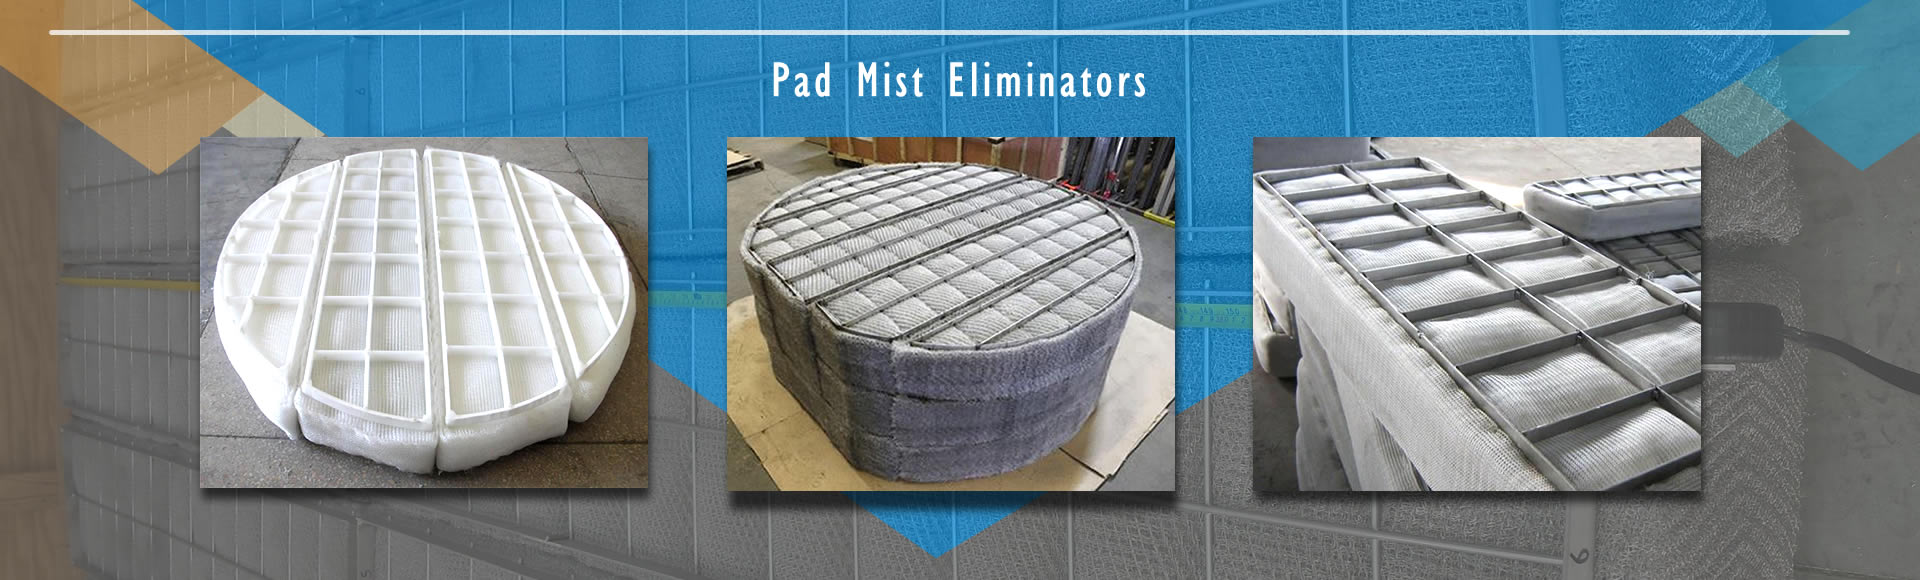 PP and stainless steel mist eliminators with grids.